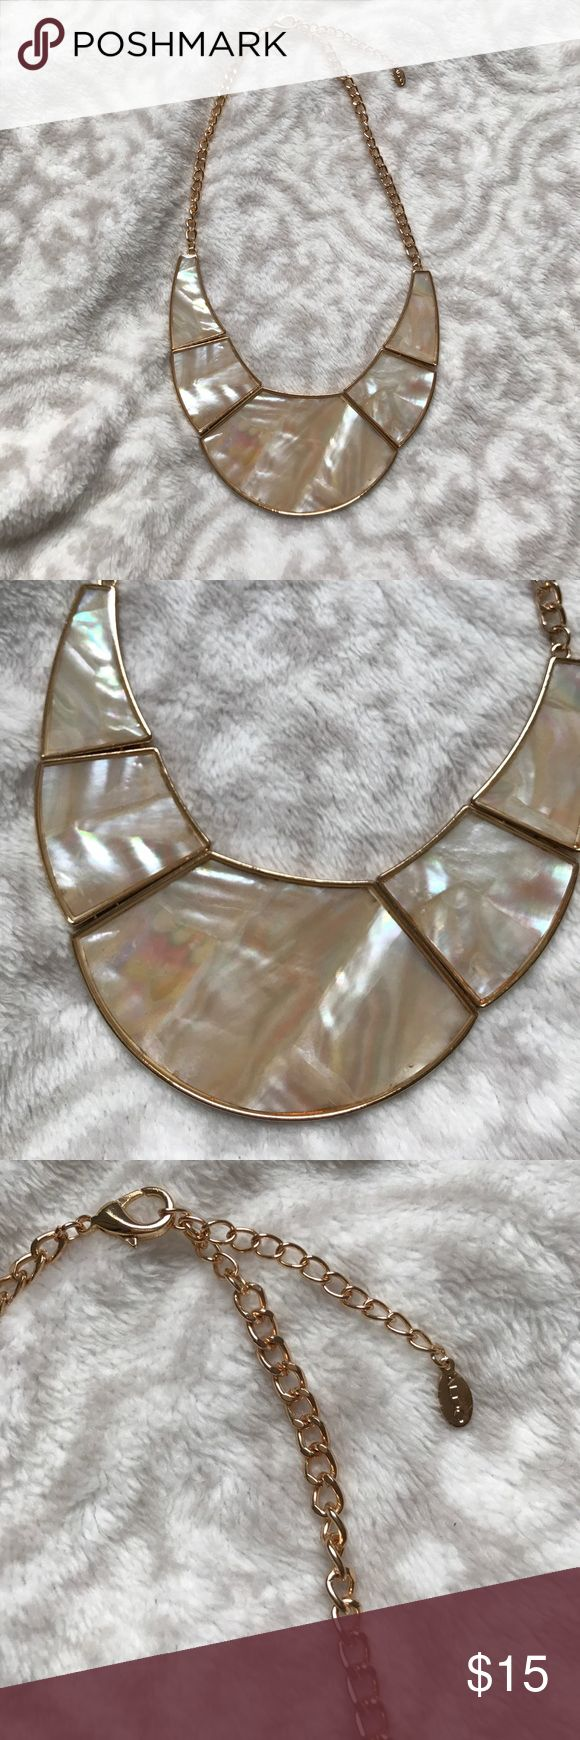 Aldo statement necklace Never worn.  Perfect condition statement necklace from ALDO. Adjustable straps for preferred length Aldo Jewelry Necklaces